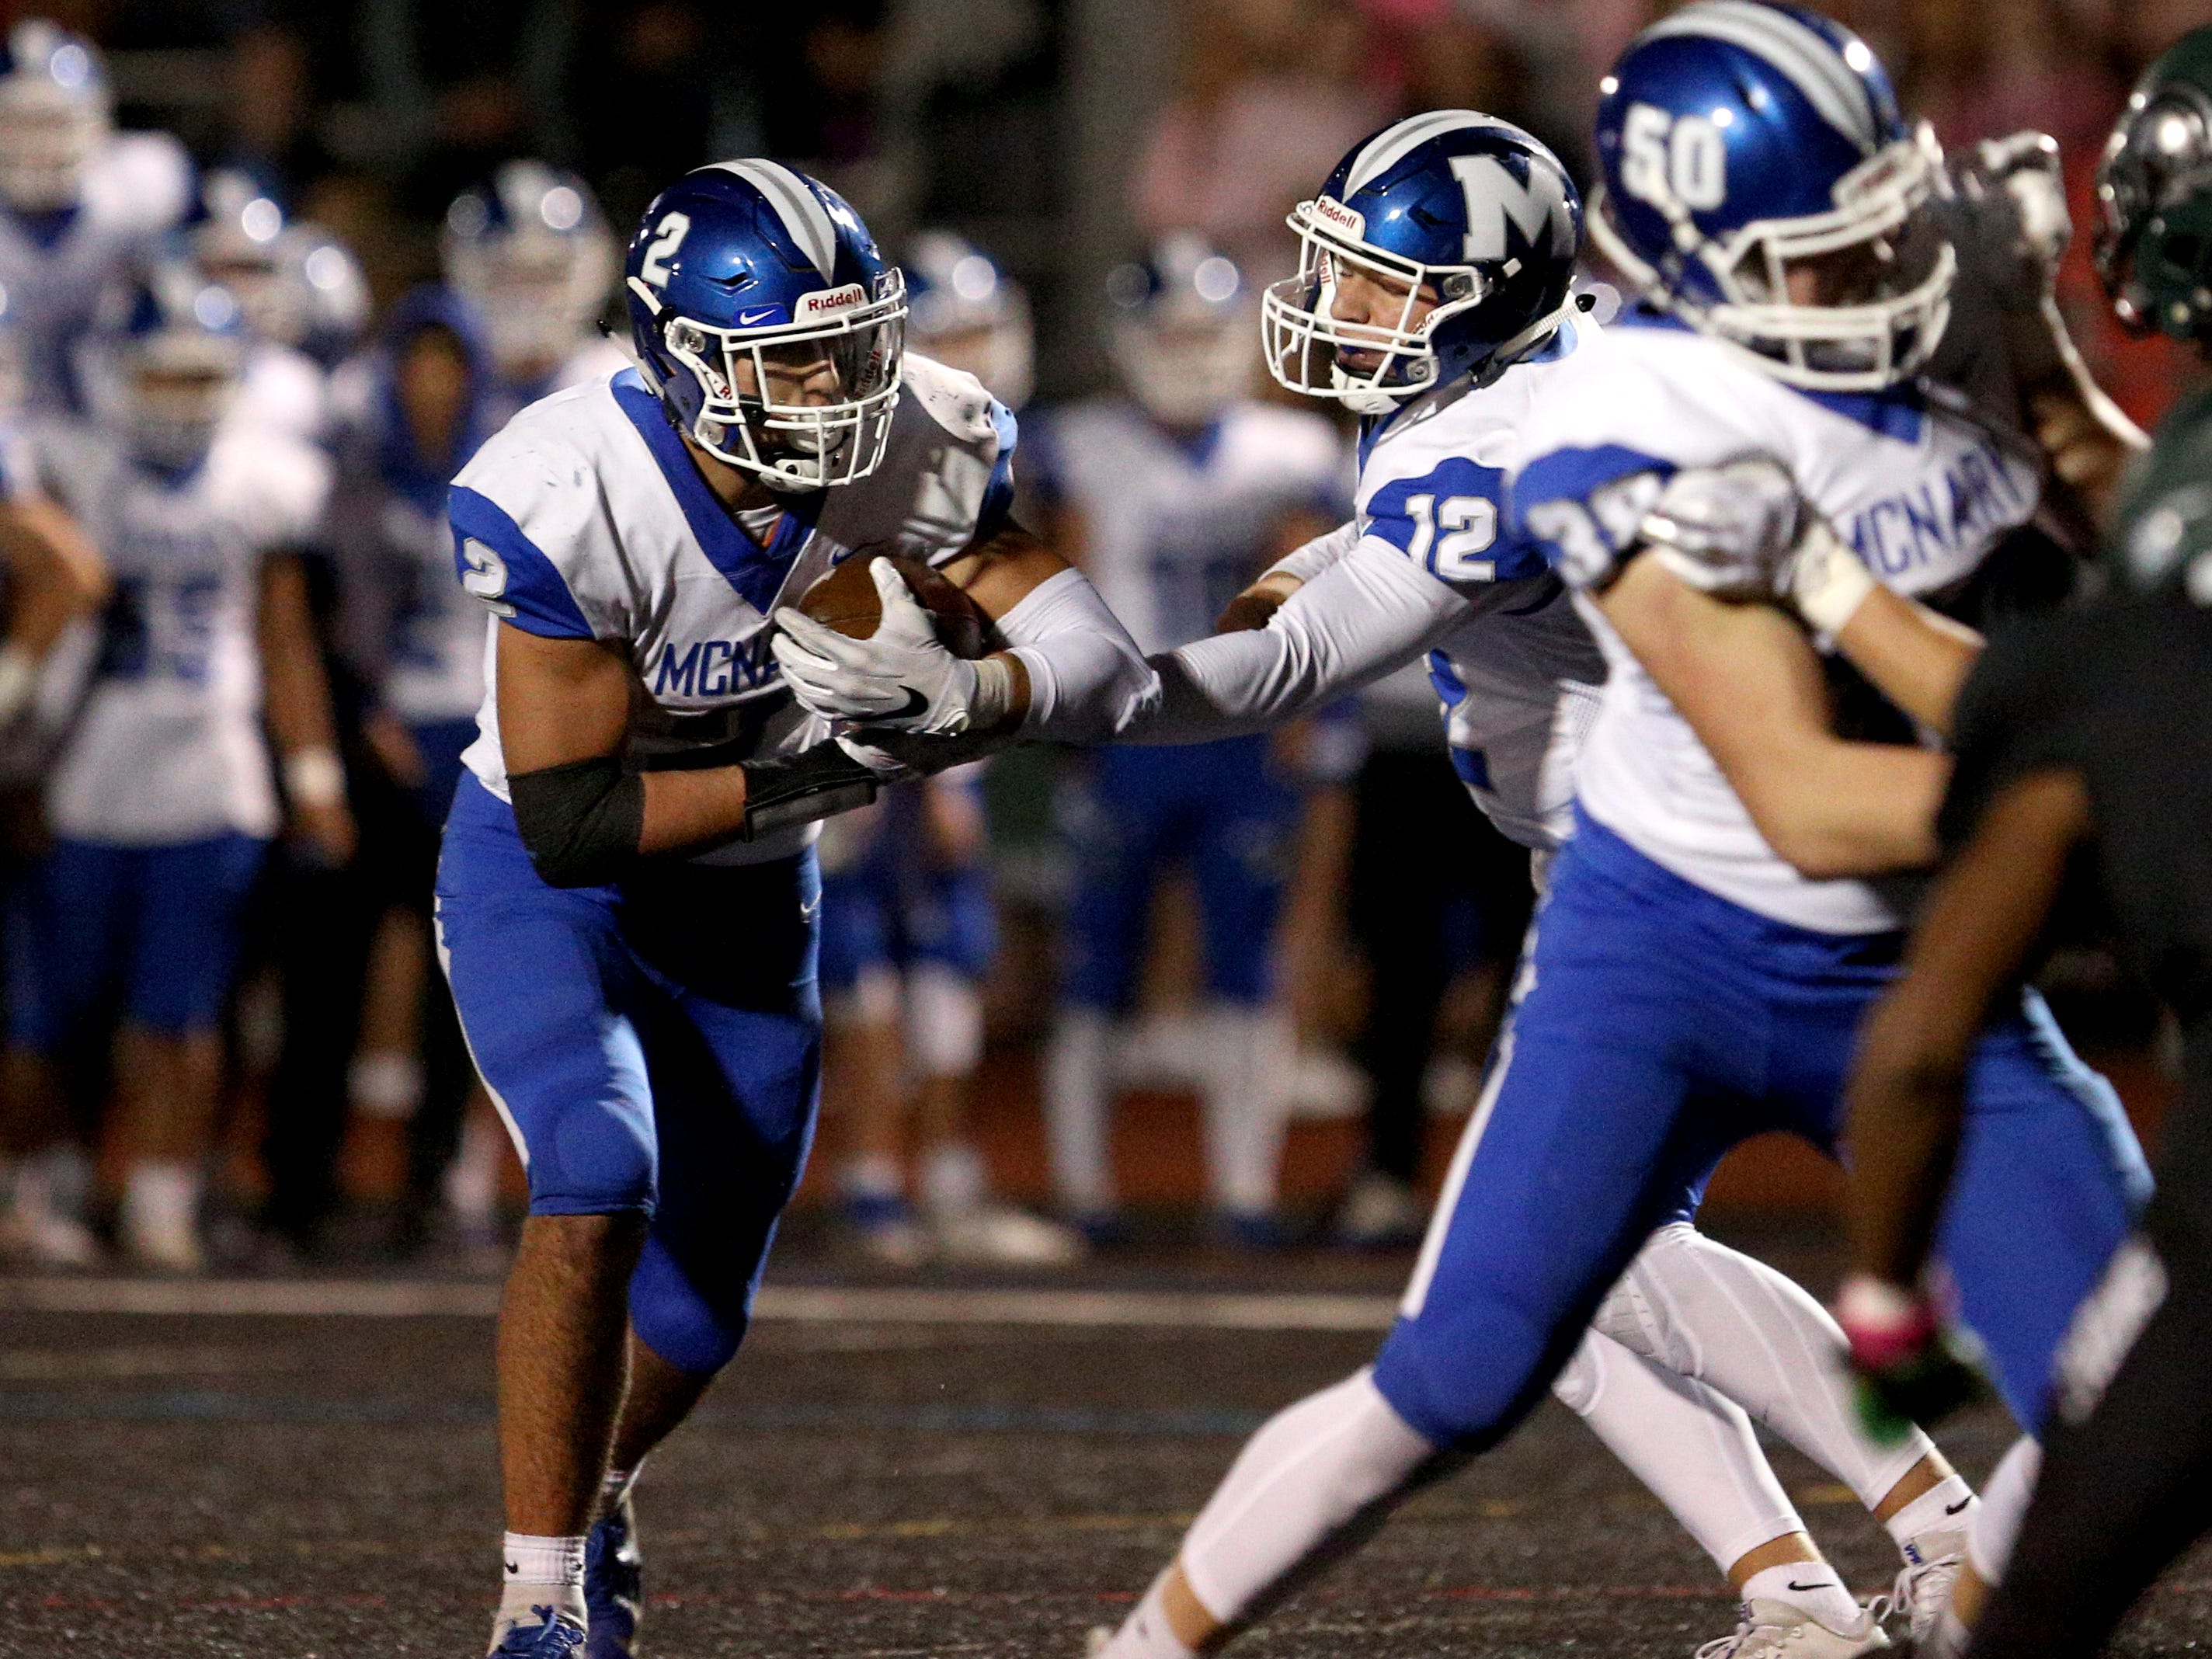 McNary's Erik Barker (12) hands the ball off to Jr. Walling (2) during the first half of the McNary vs. West Salem football game at West Salem High School on Friday, Oct. 19.